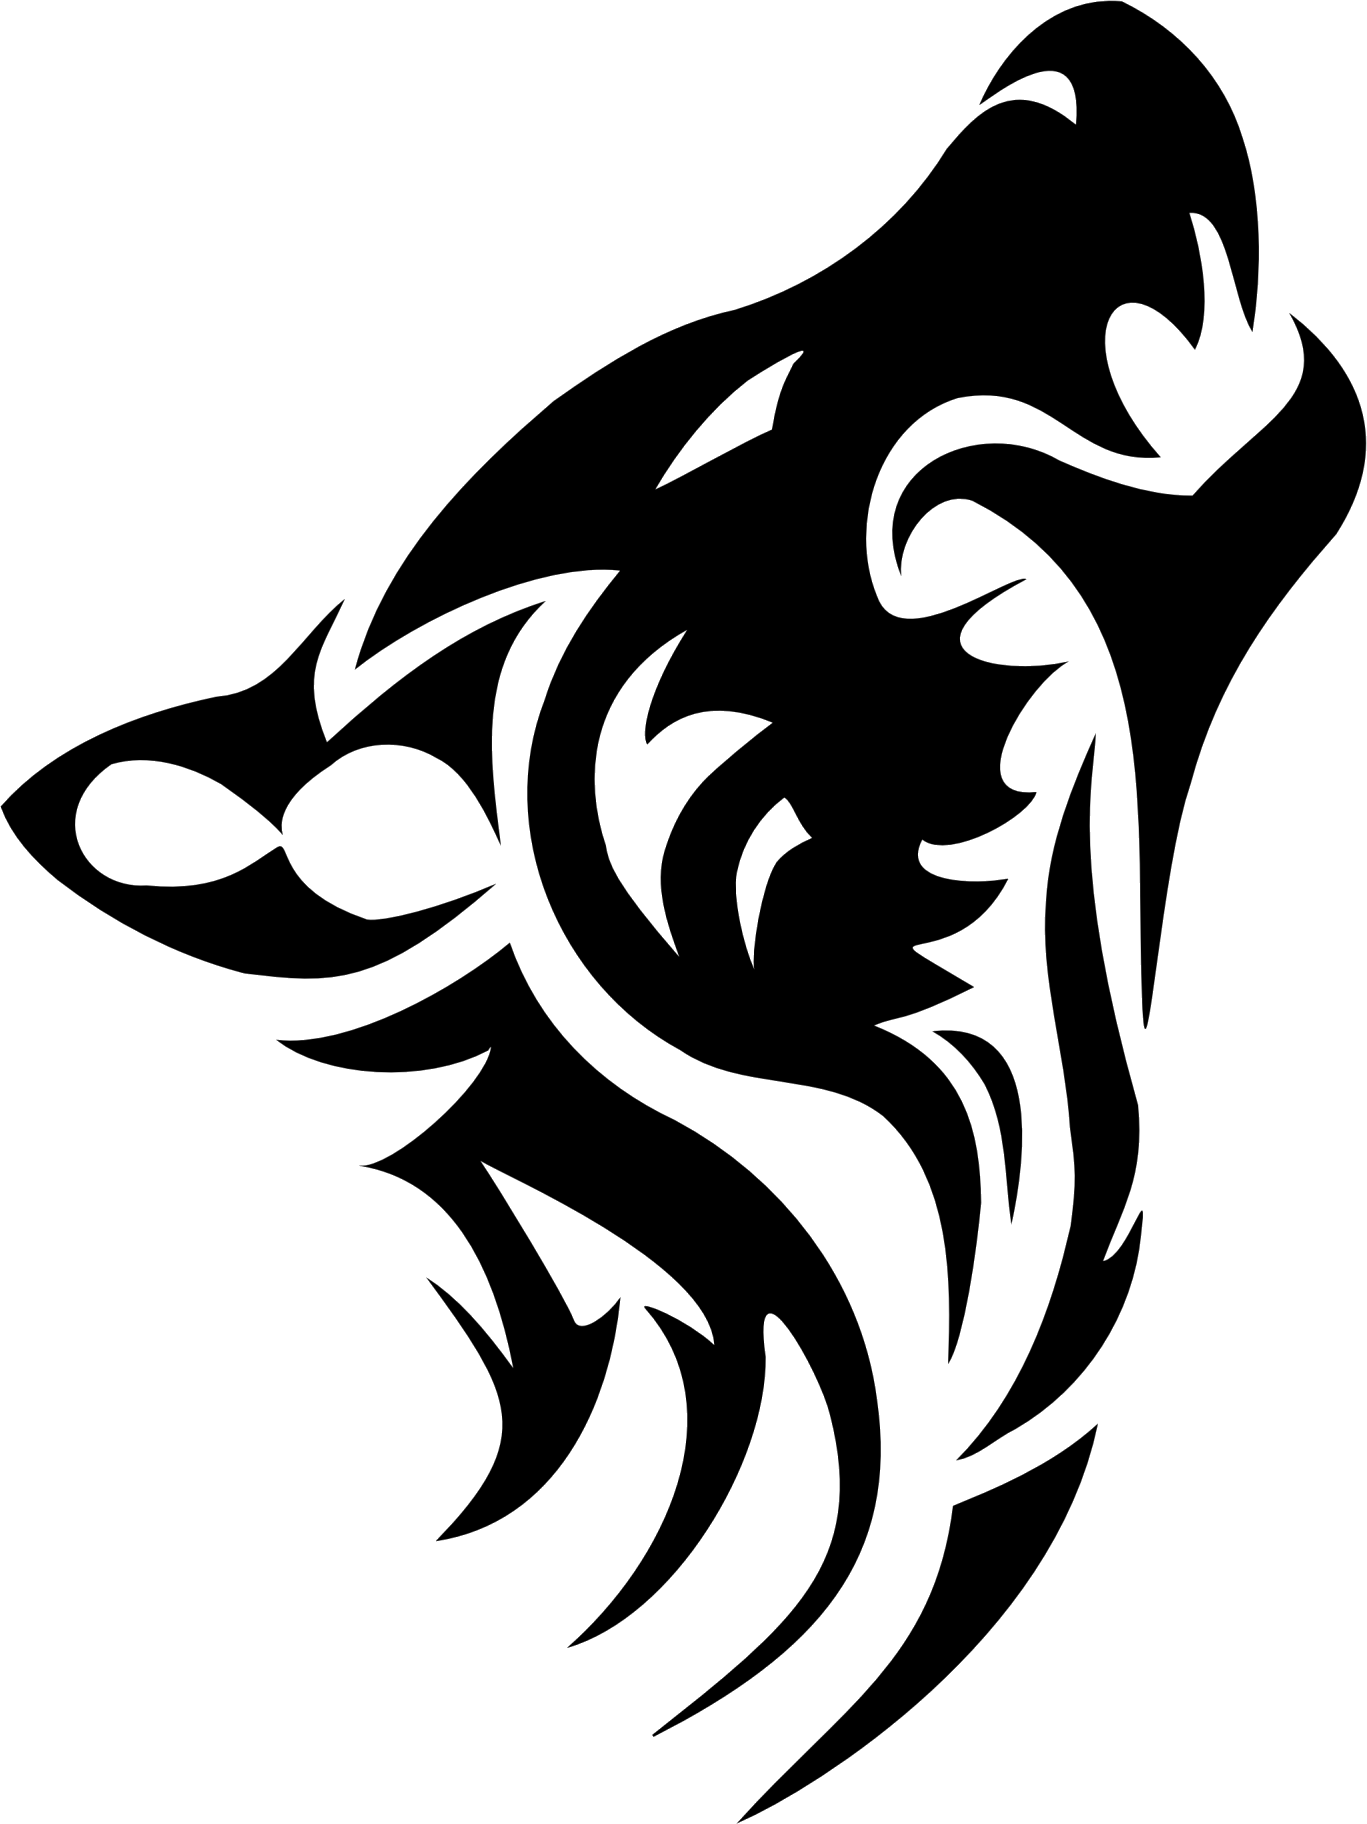 Wolves clipart transparent background. Wolf tattoos png images